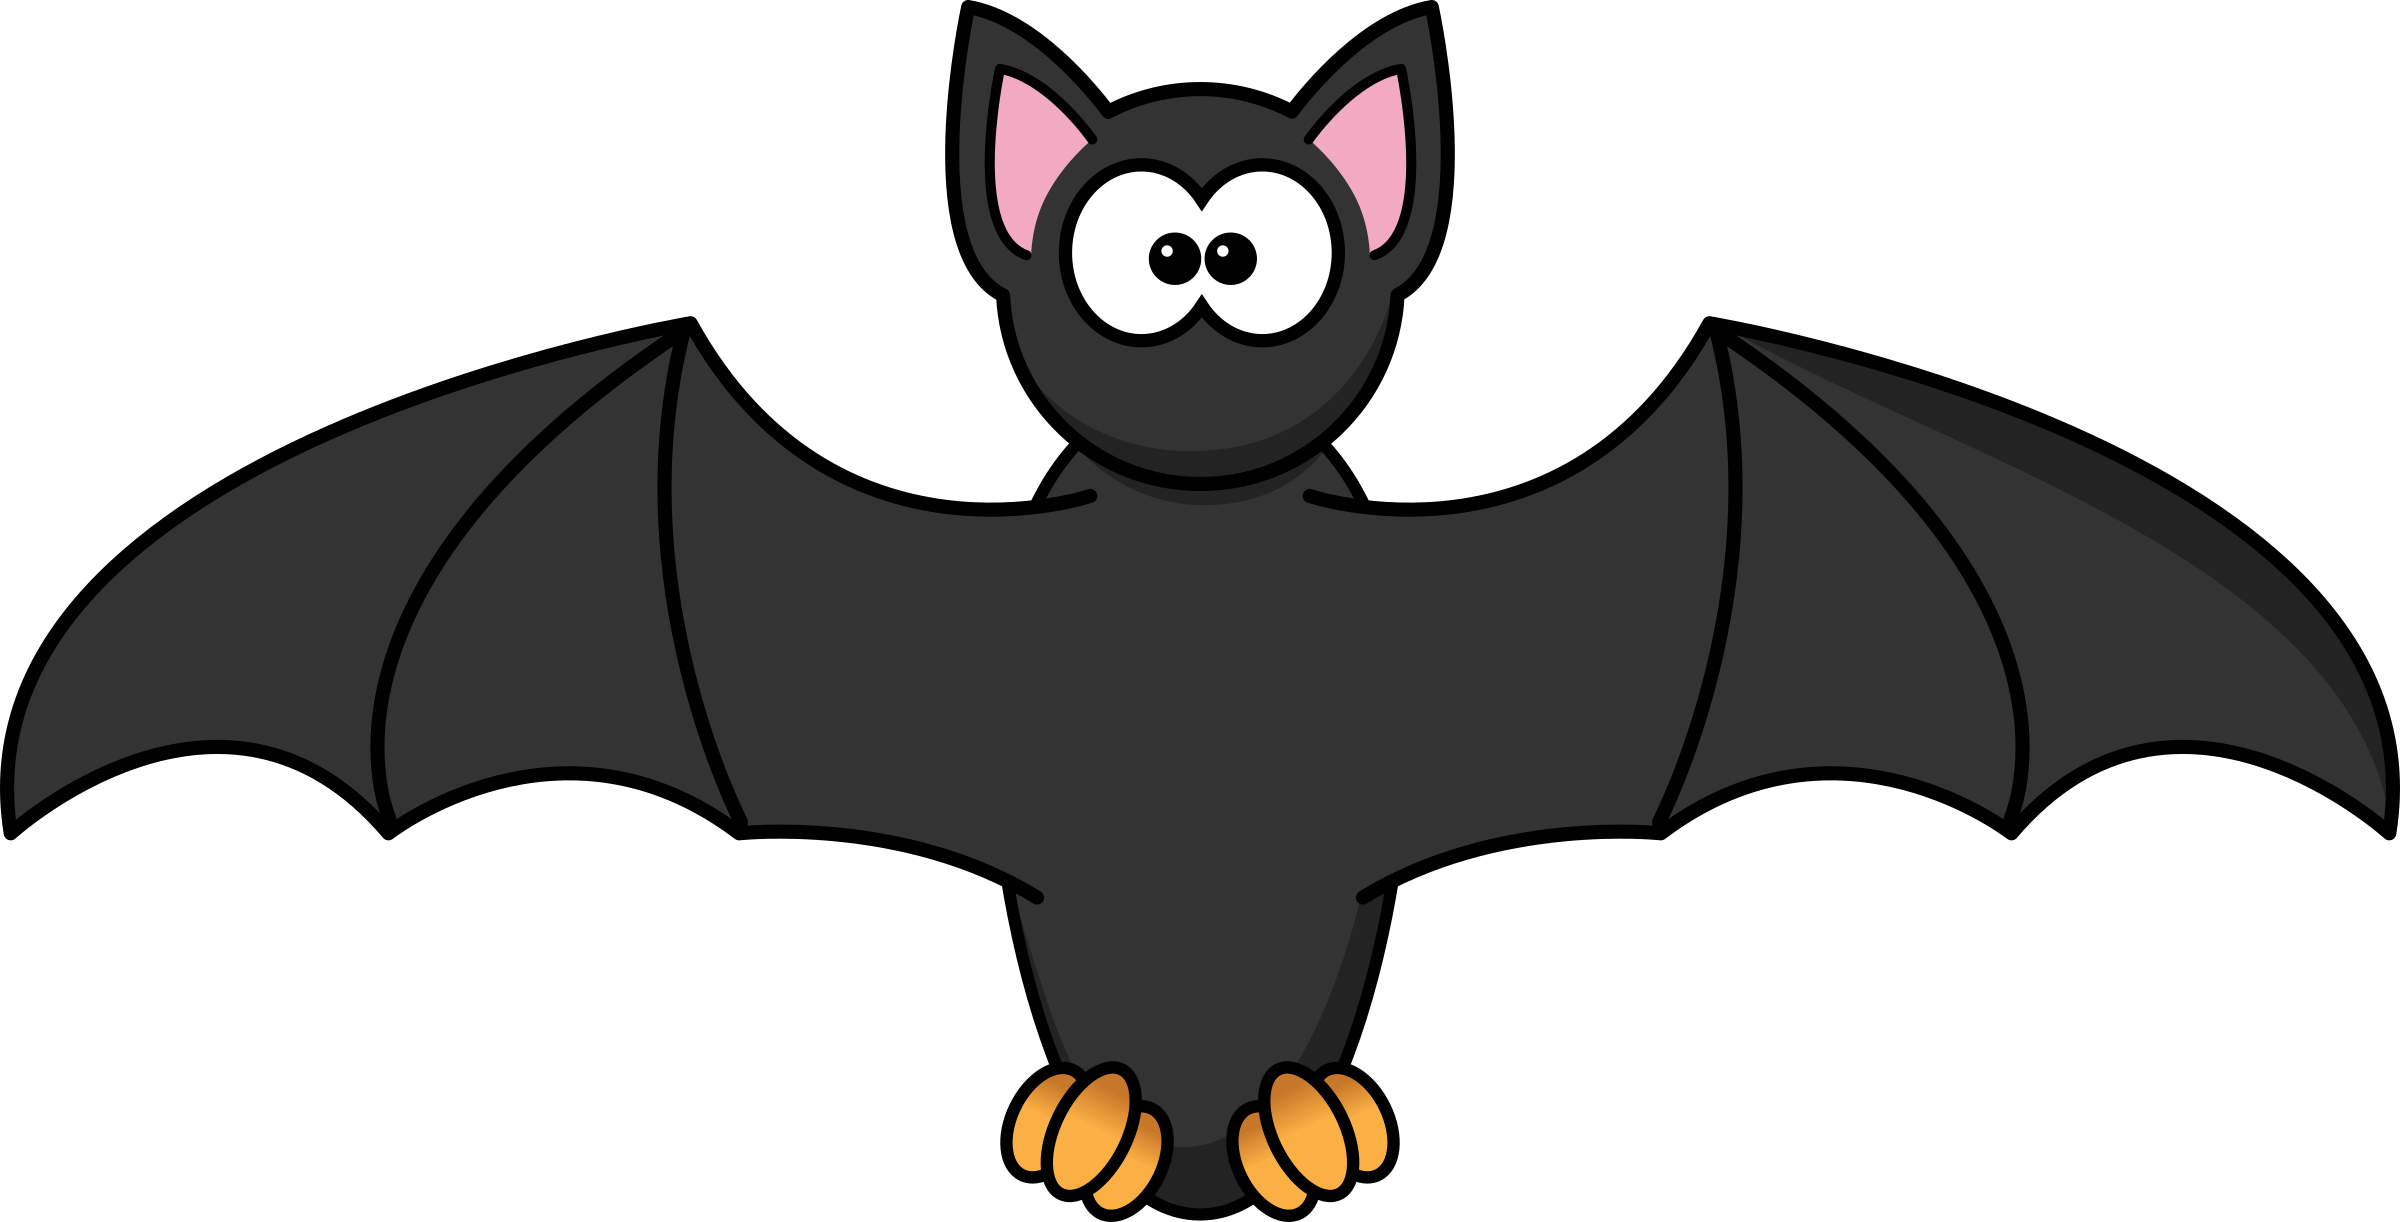 Cartoon Bat Images amp Stock Pictures Royalty Free Cartoon